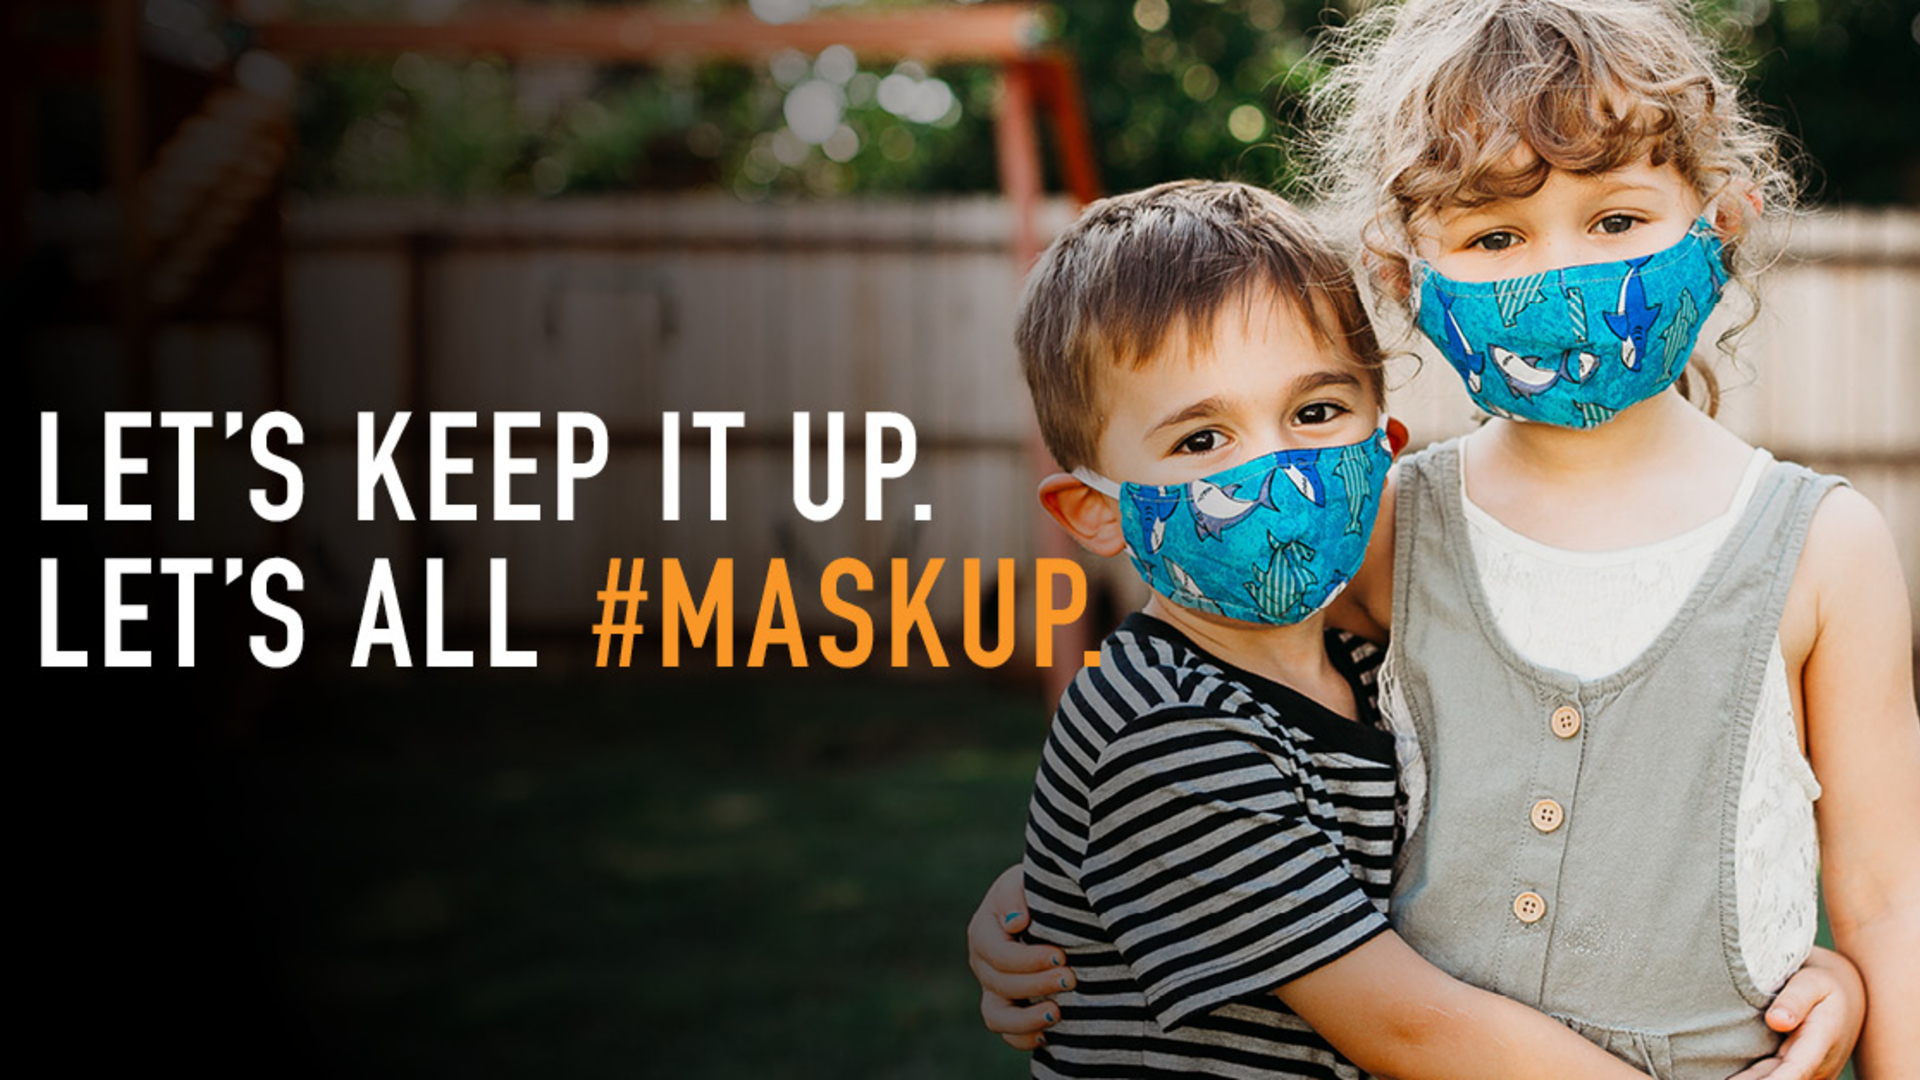 One hundred of the nation's top health care systems across the U.S., including Charlotte-based Atrium Health, have come together with an urgent plea for all Americans: mask up, because wearing a facemask is our best chance at slowing the surging COVID-19 pandemic now.